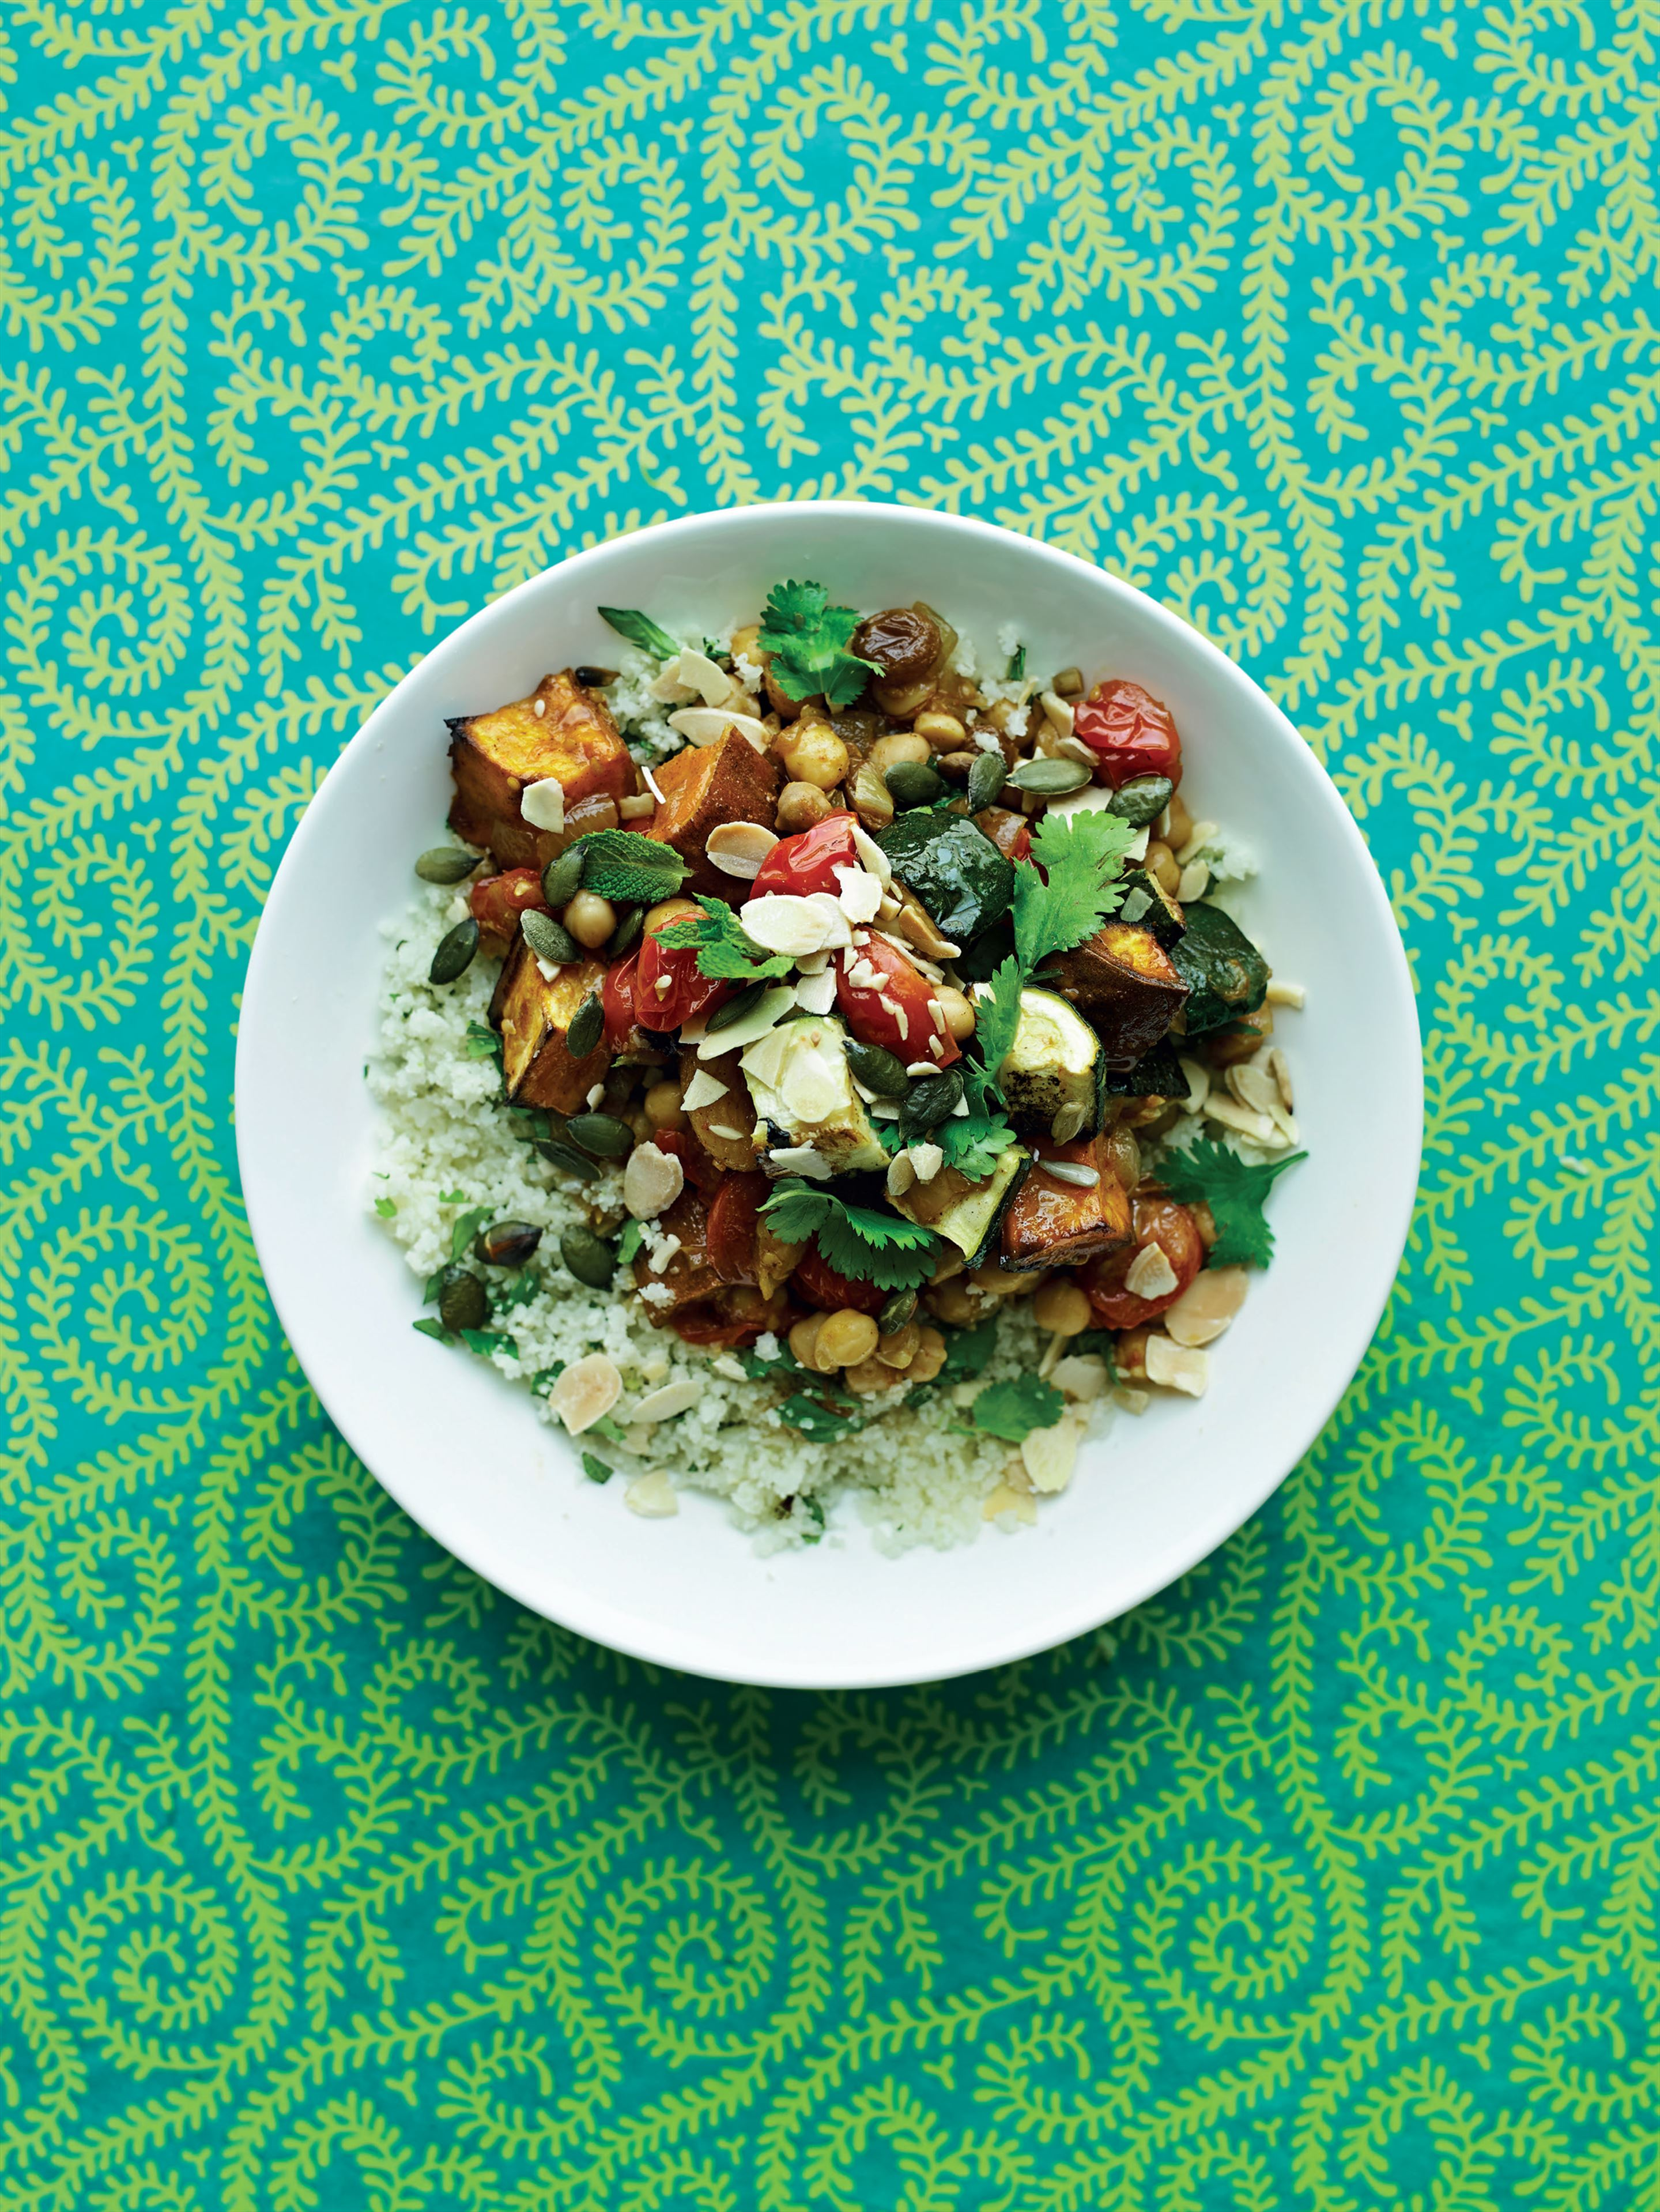 North African tagine with cauliflower 'couscous'